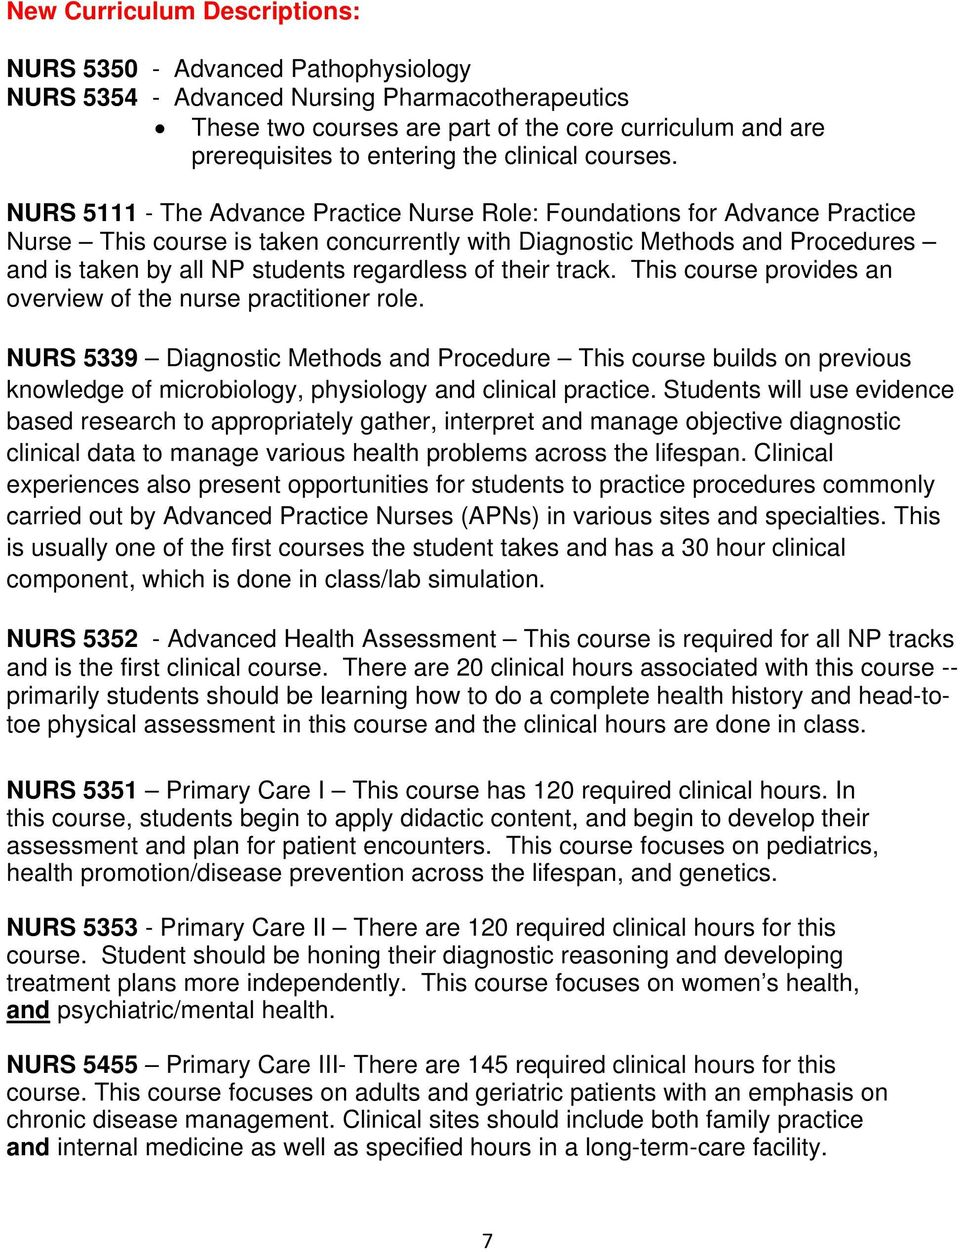 NURS 5111 - The Advance Practice Nurse Role: Foundations for Advance Practice Nurse This course is taken concurrently with Diagnostic Methods and Procedures and is taken by all NP students regardless